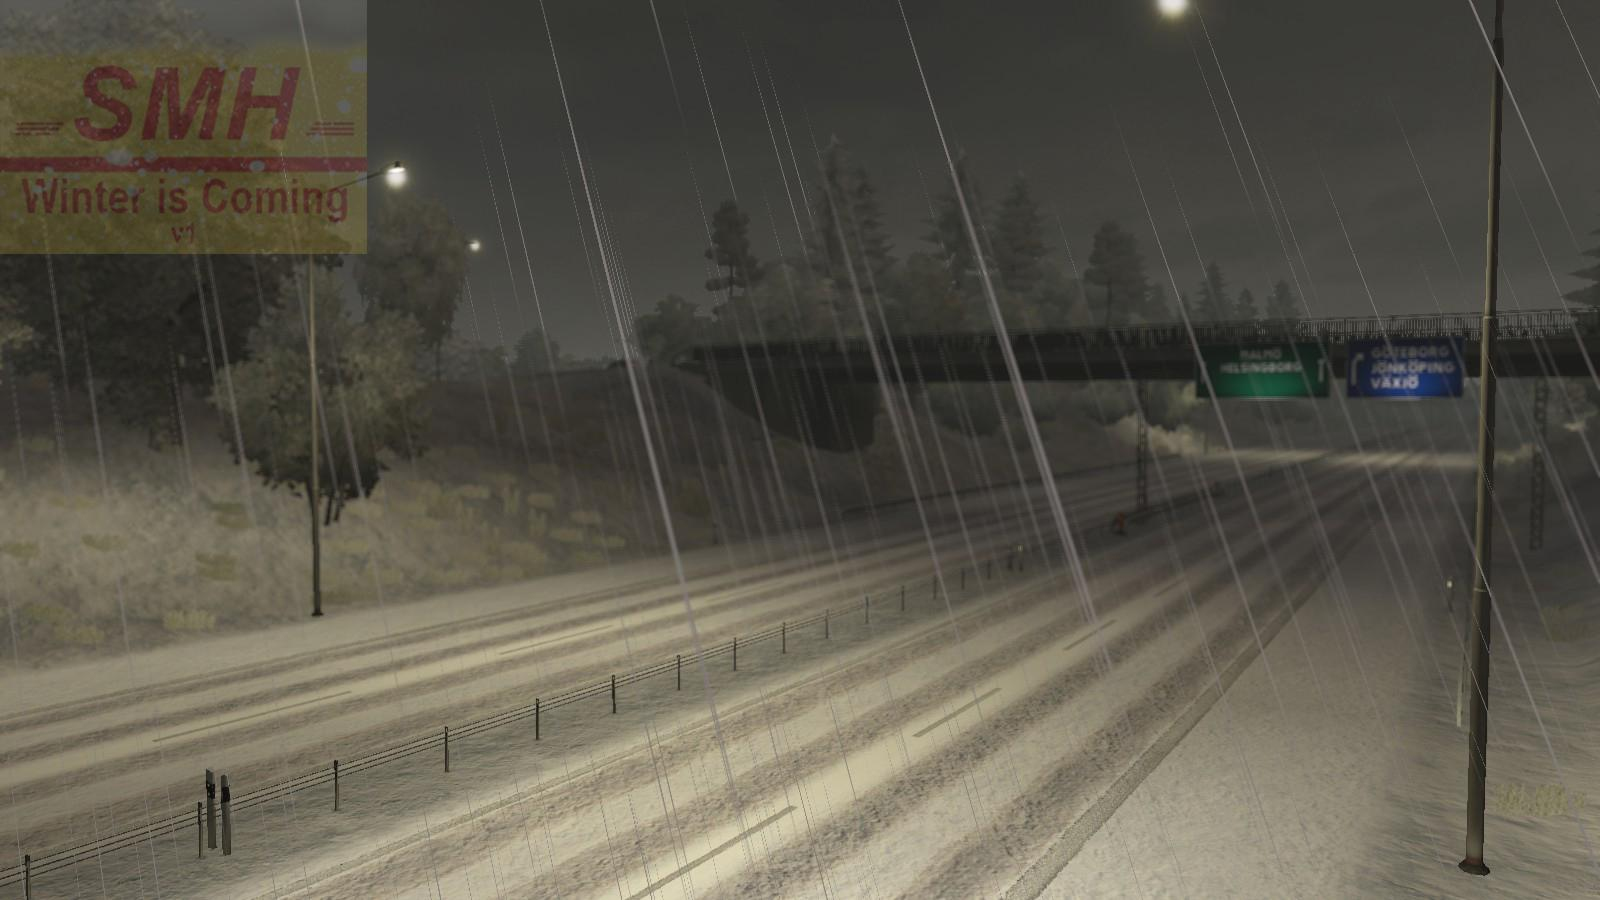 winter-is-coming-tnt-trailers-43-cargo-pack-1-21-x_3